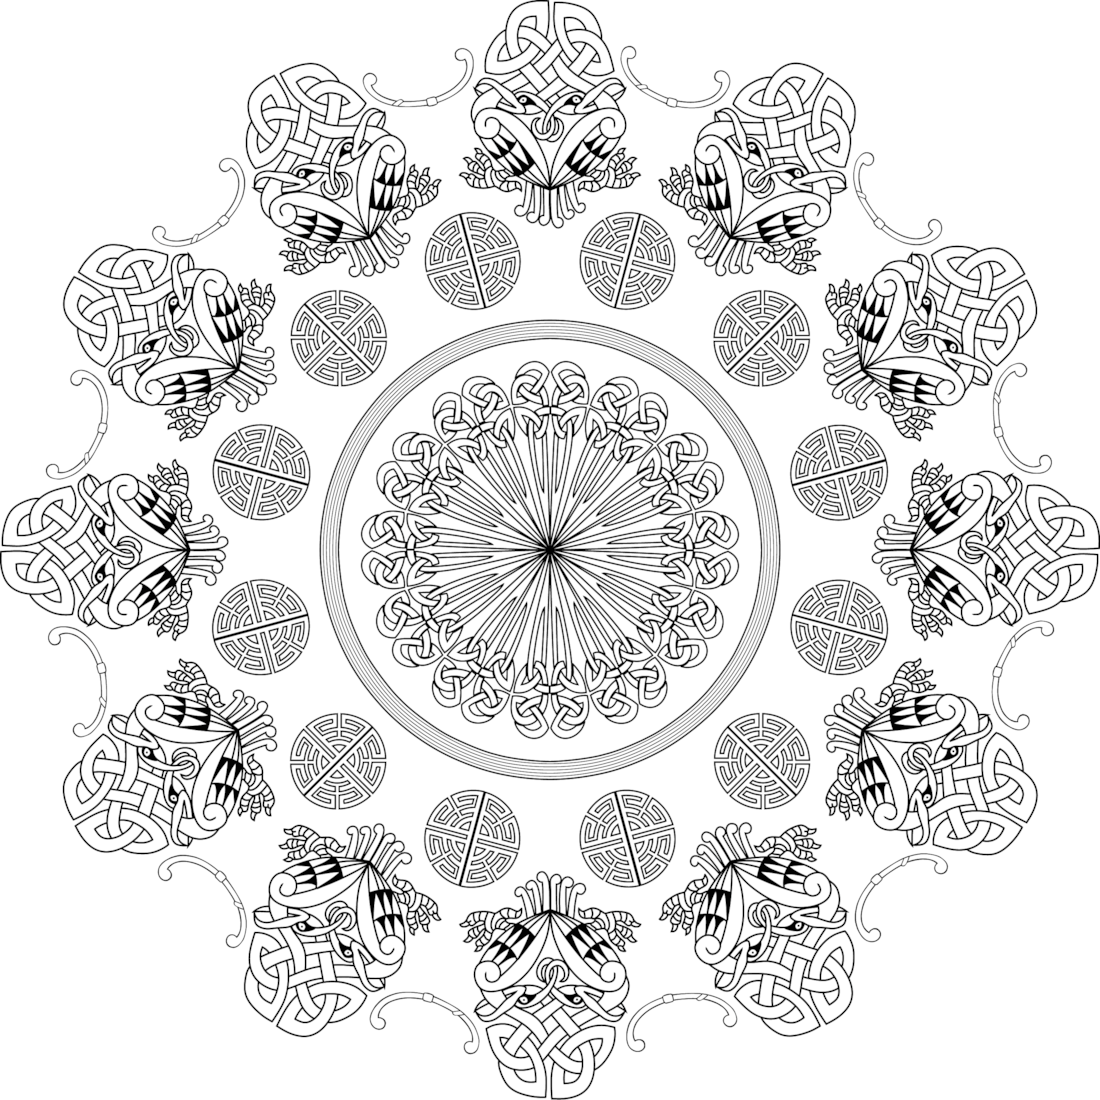 Picture of Pratimoshka Promise coloring page